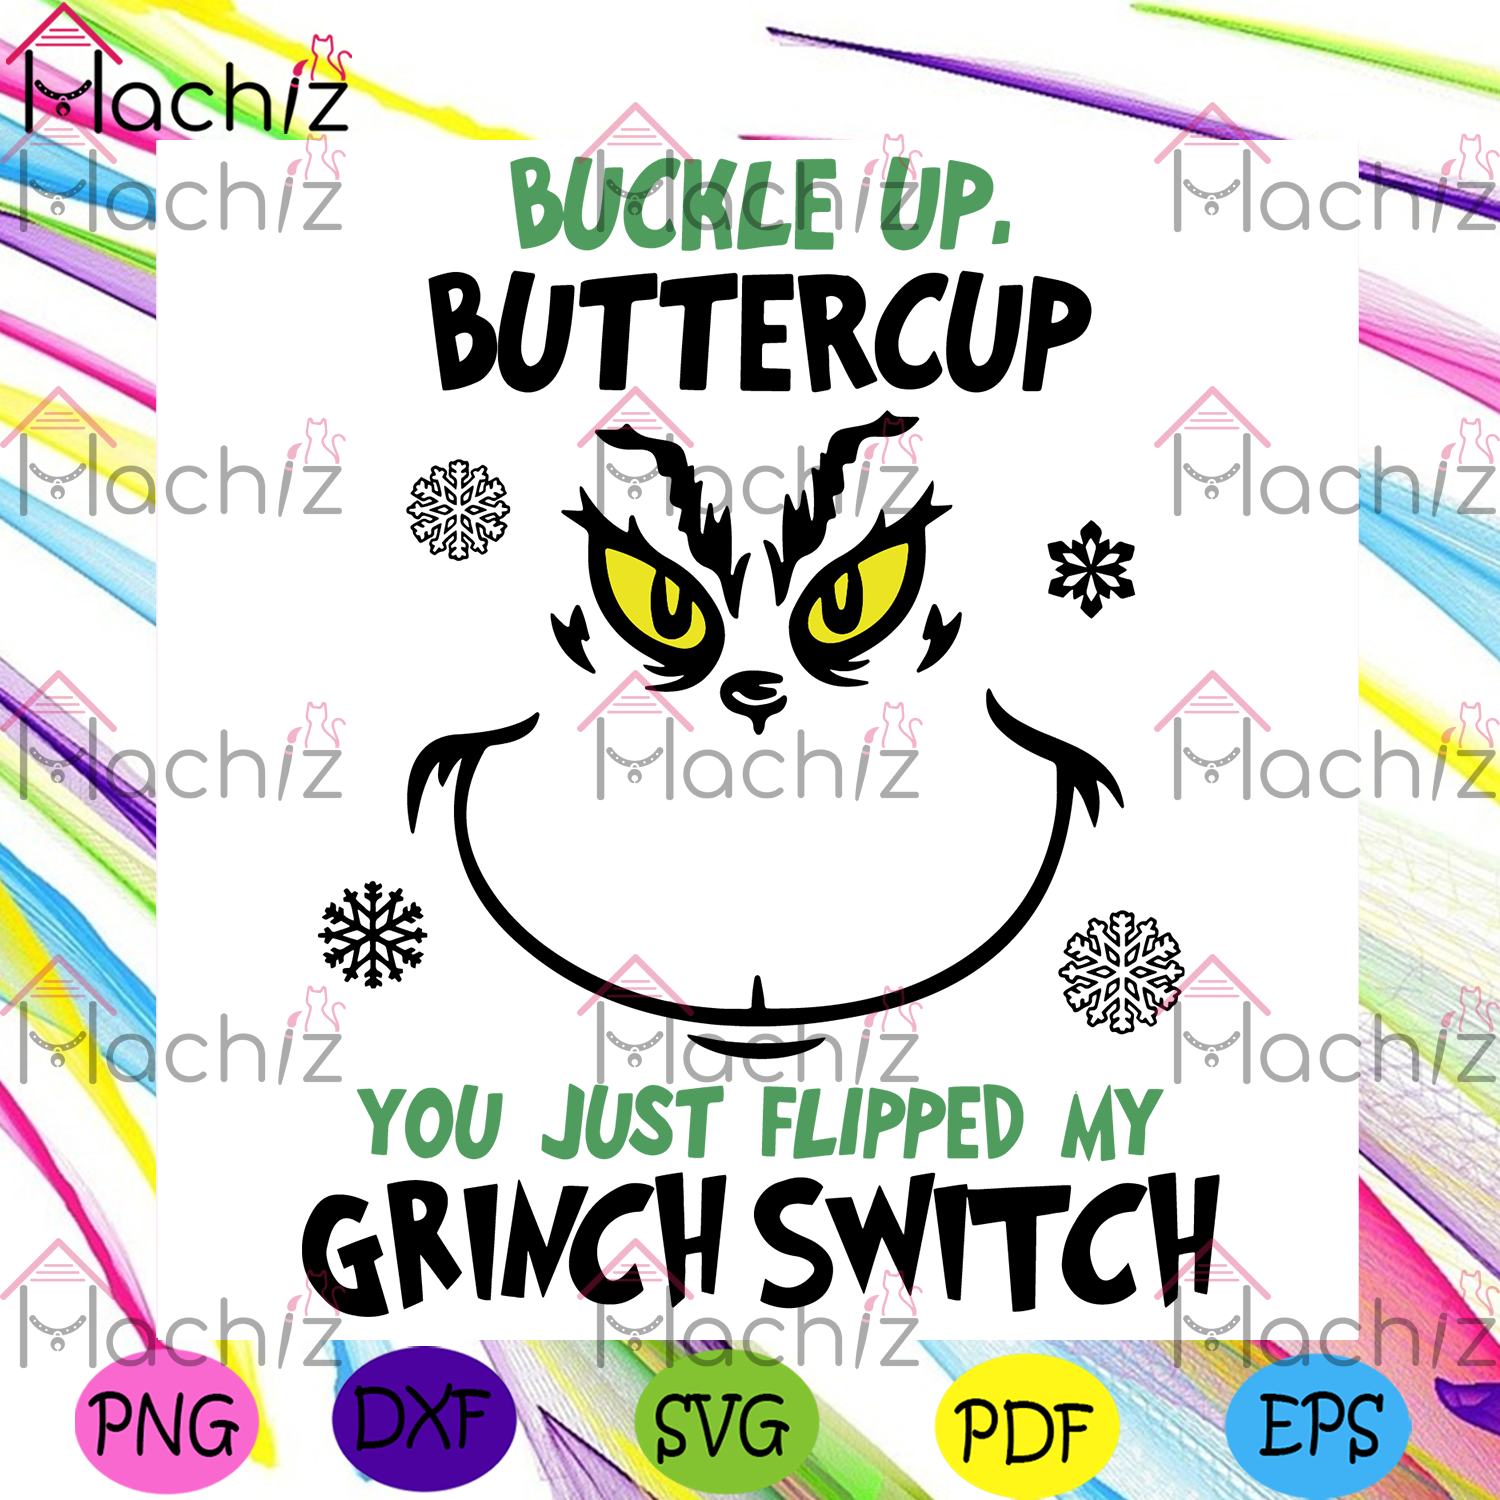 Buckle up butter cup you just flipped my grinch switch christmas svg